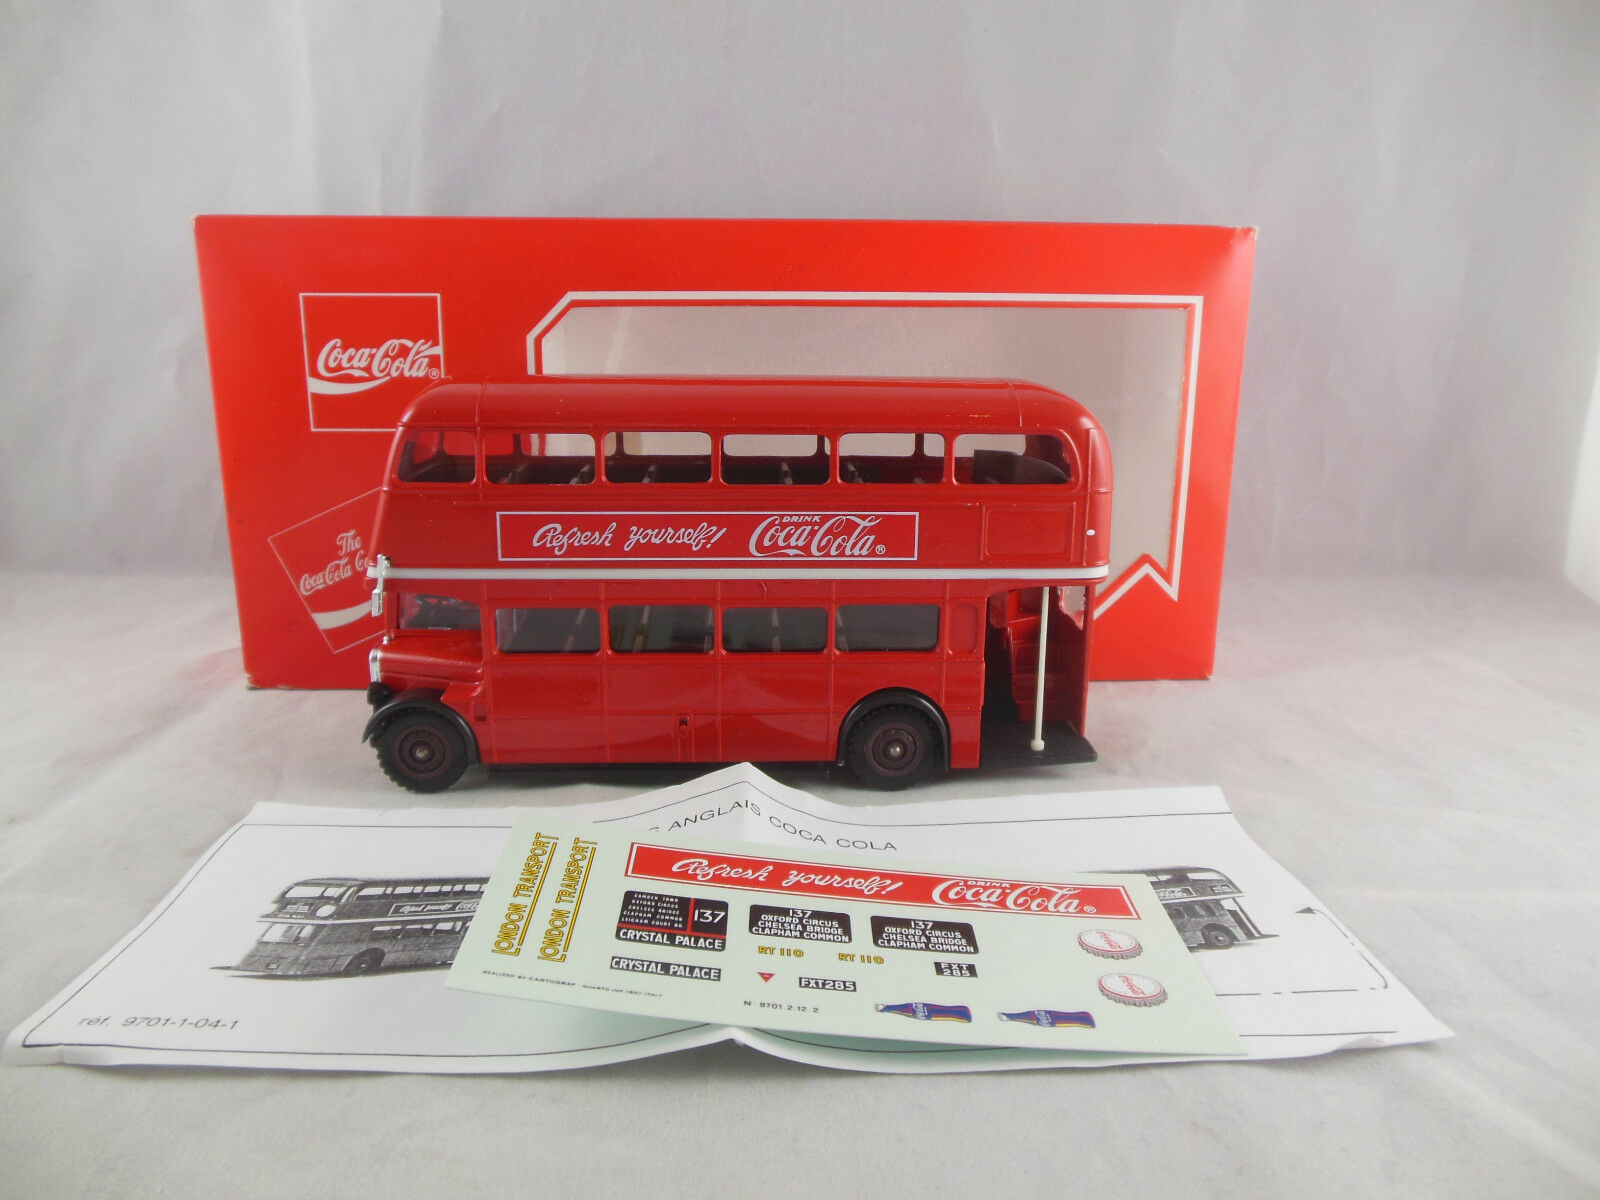 Solido AEC Routemaster Coca Cola Branded Item Scale 1 50 with transfer set